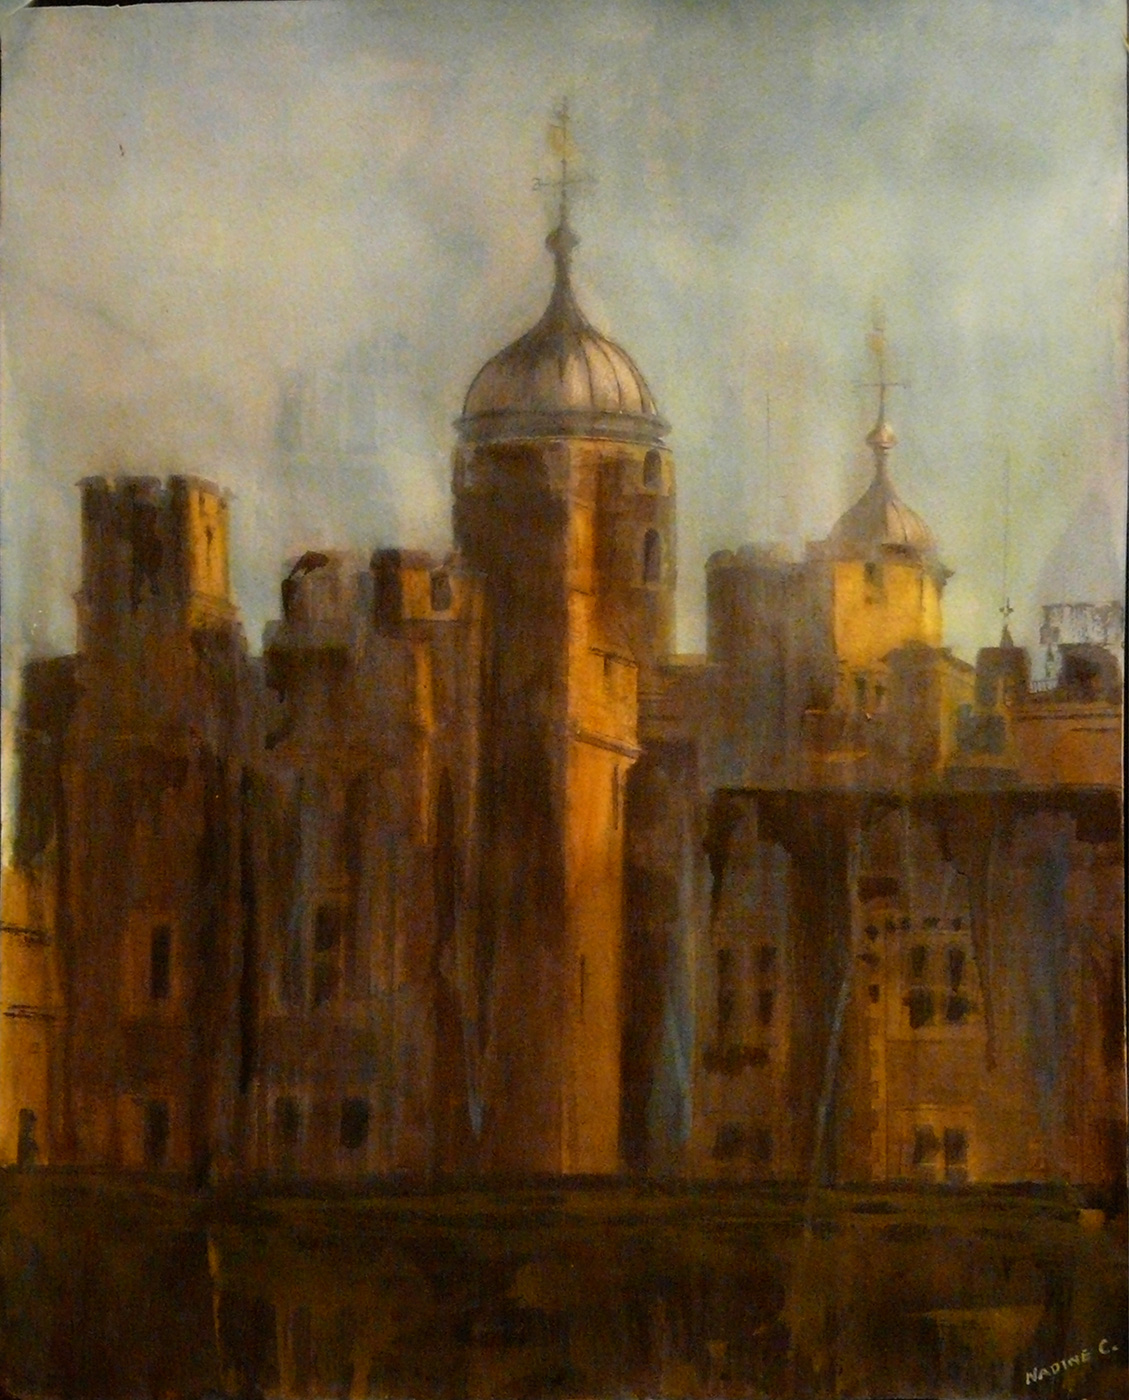 EVENING AT THE TOWER OF LONDON